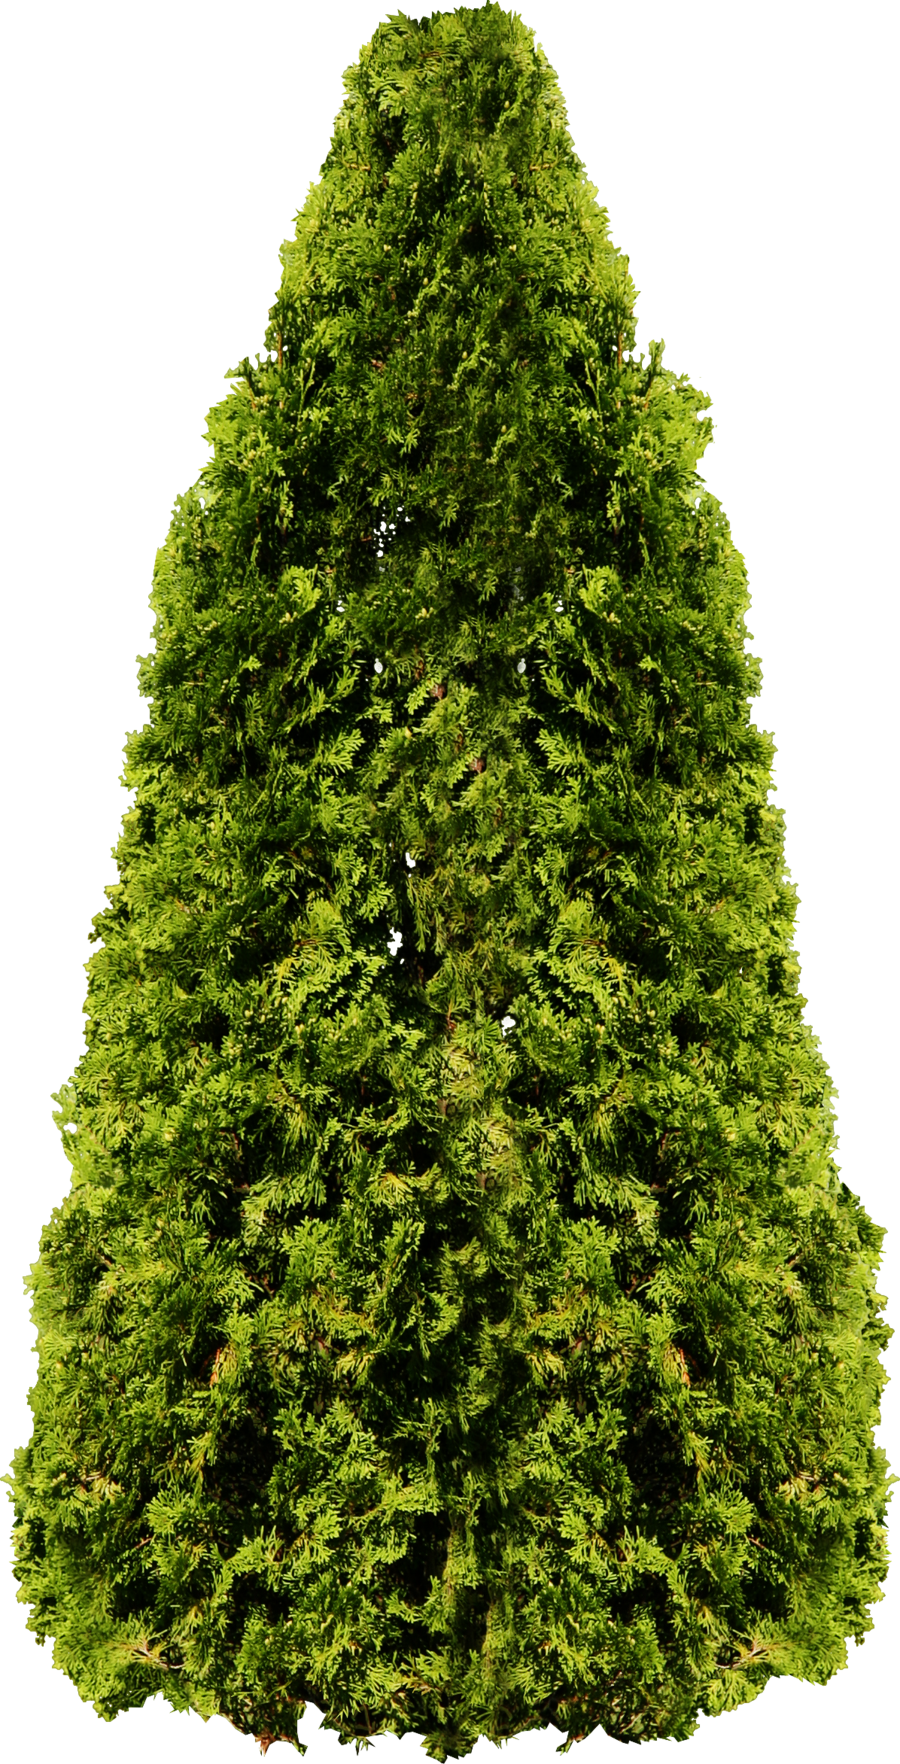 Trees plan png. Tree images pictures download